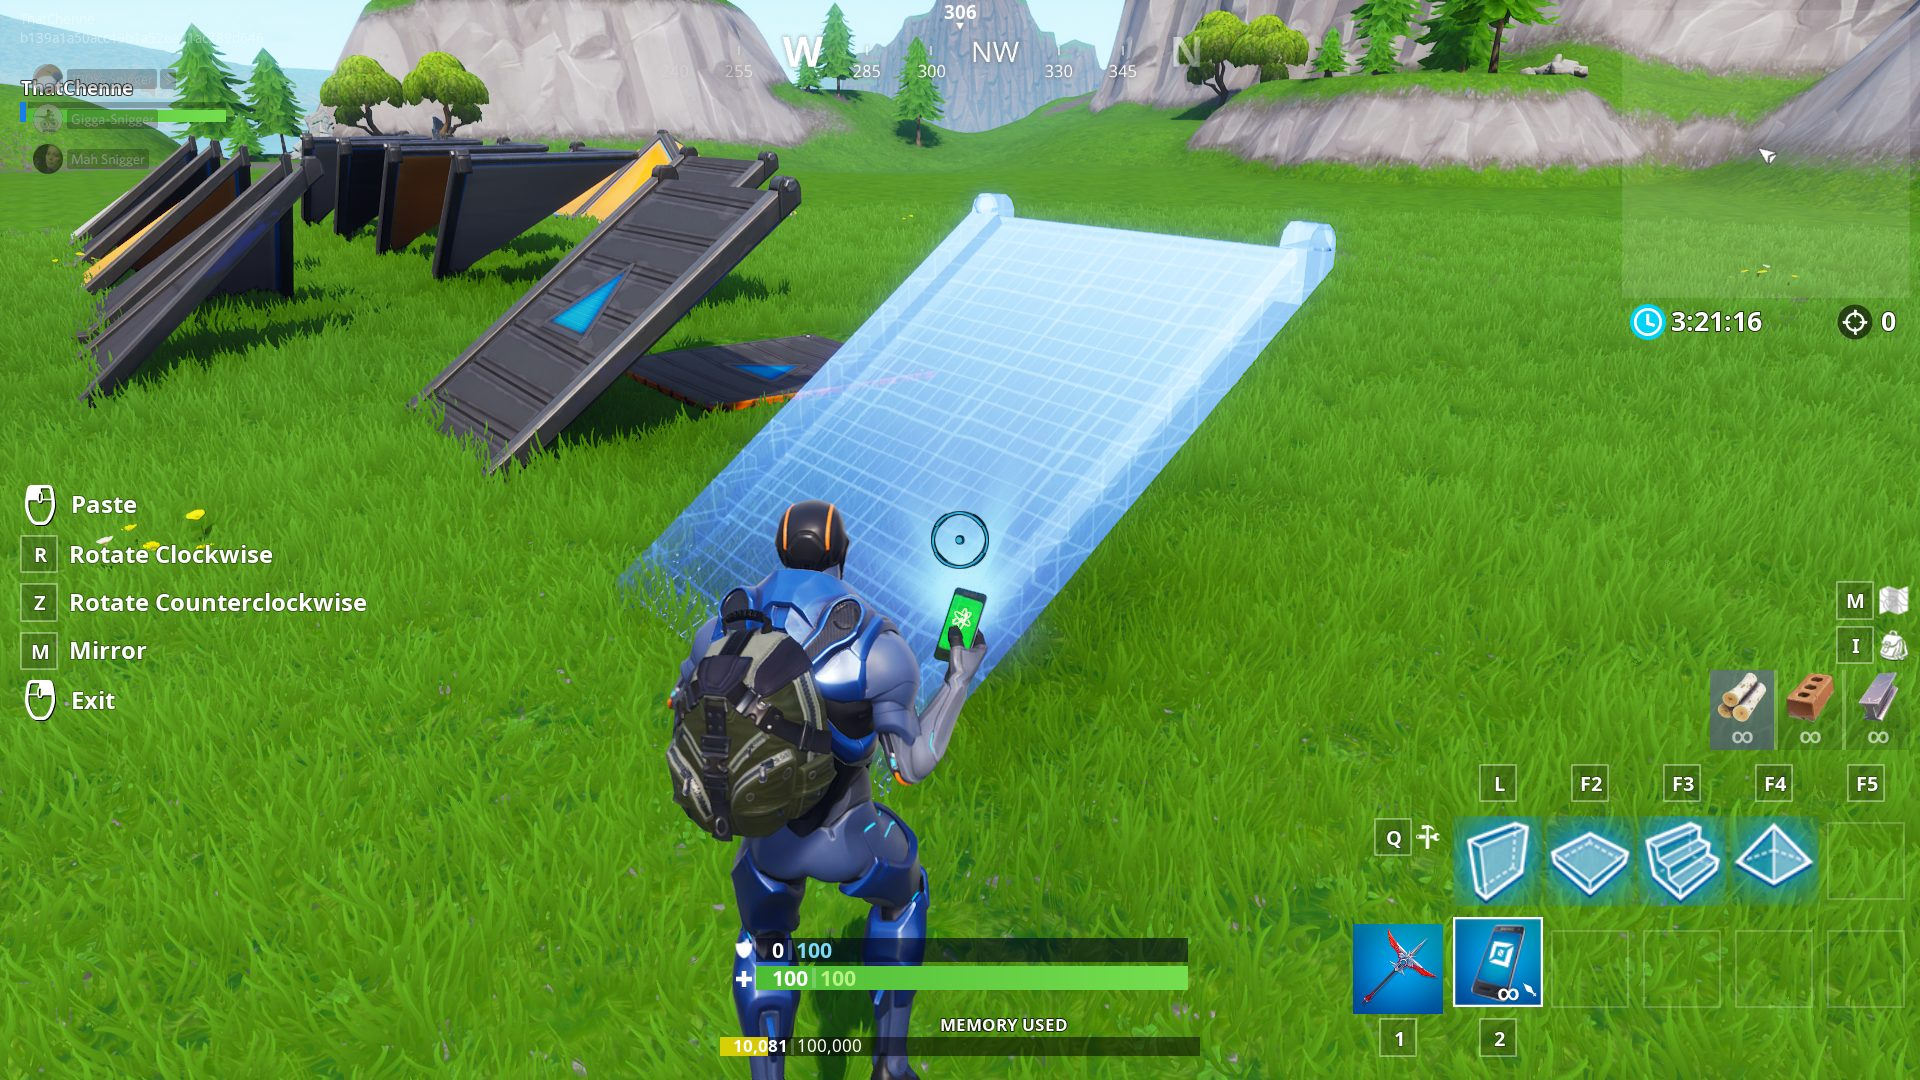 Fortnite Creative: How to copy an item - PwrDown